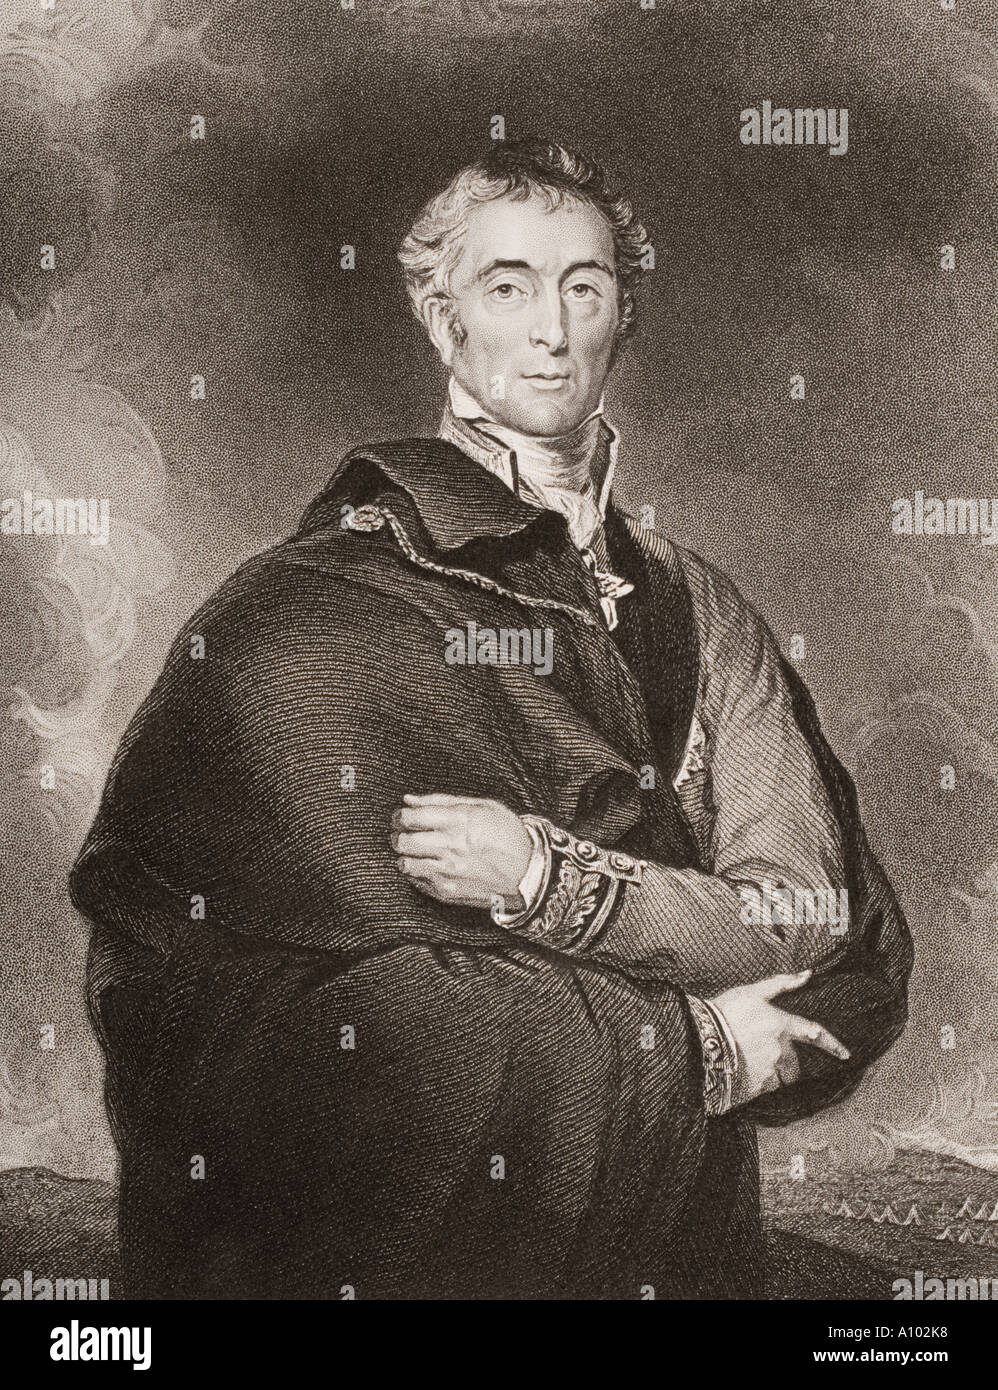 Arthur Wellesley 1st Duke of Wellington 1769 1852 British soldier and statesman - Stock Image